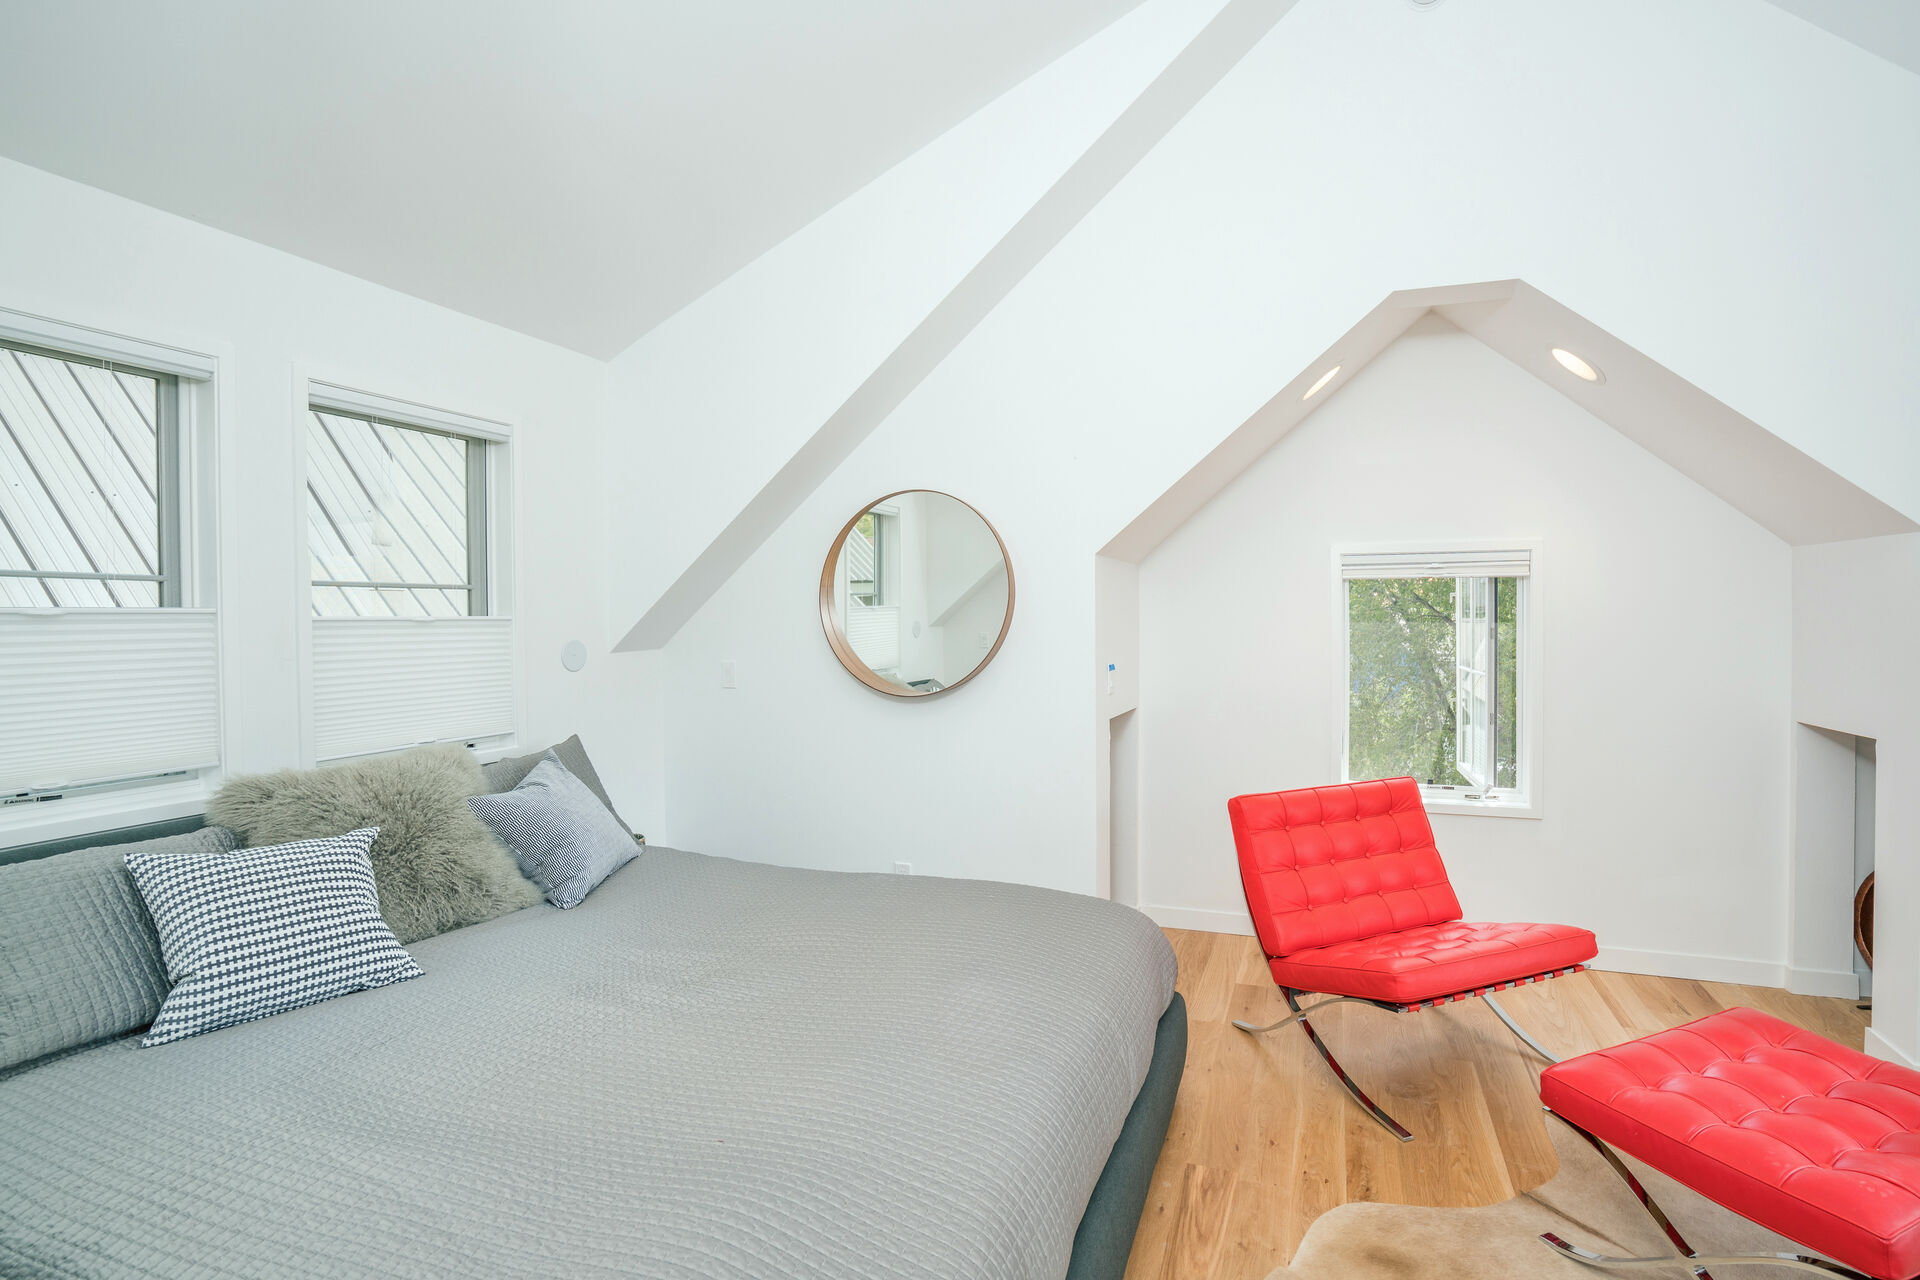 Bedroom with Comfy Grey Bed and Red Lounge Chair